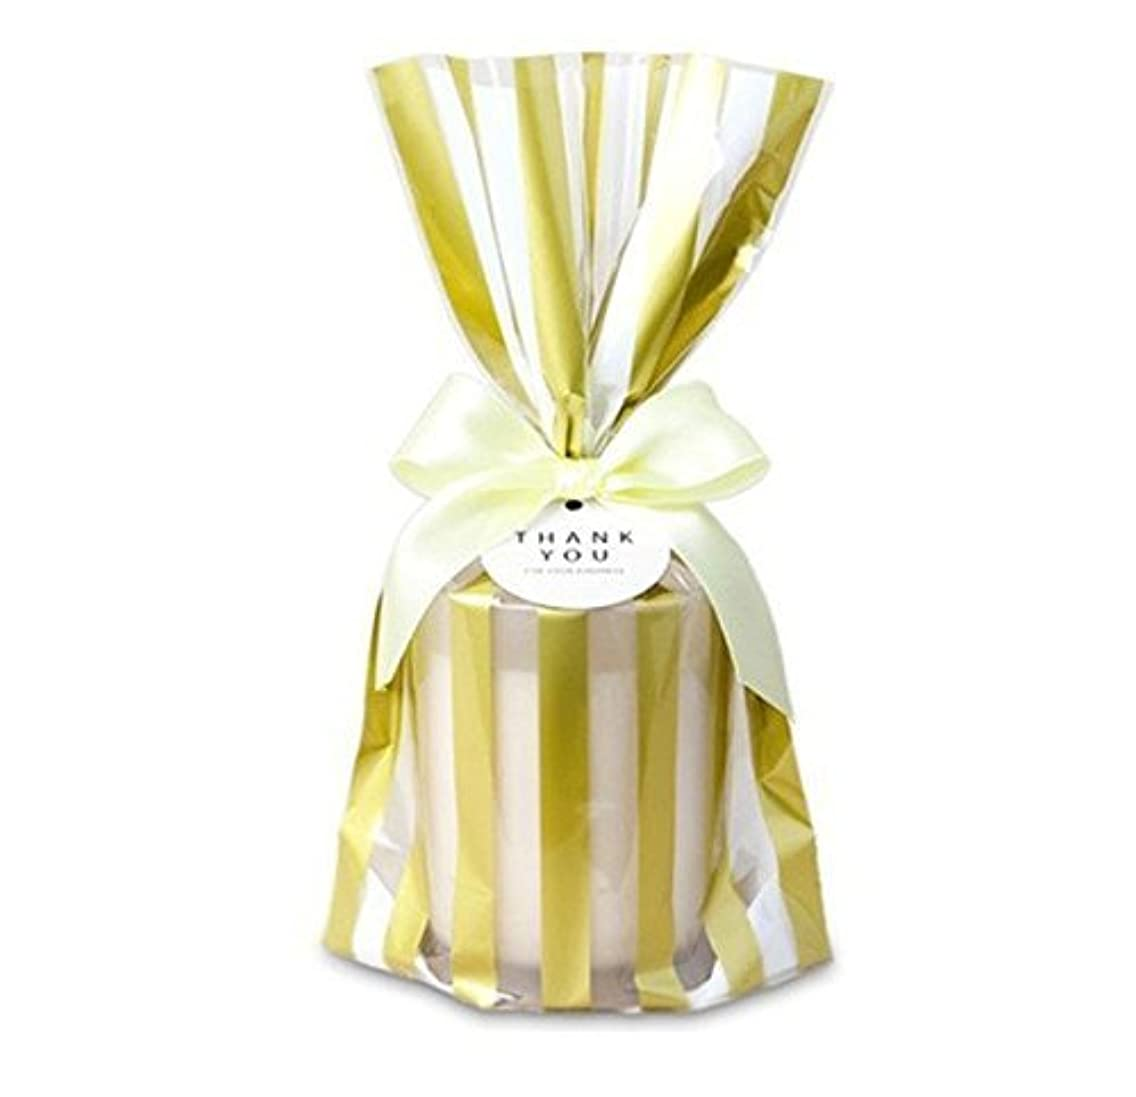 Astra Gourmet 50 ct. Plastic Cookie Bags, Party Favor Bag, Treat Bag with Gold Stripe for for Chocolate,Candy,Snack Wrapping qpgzakw36